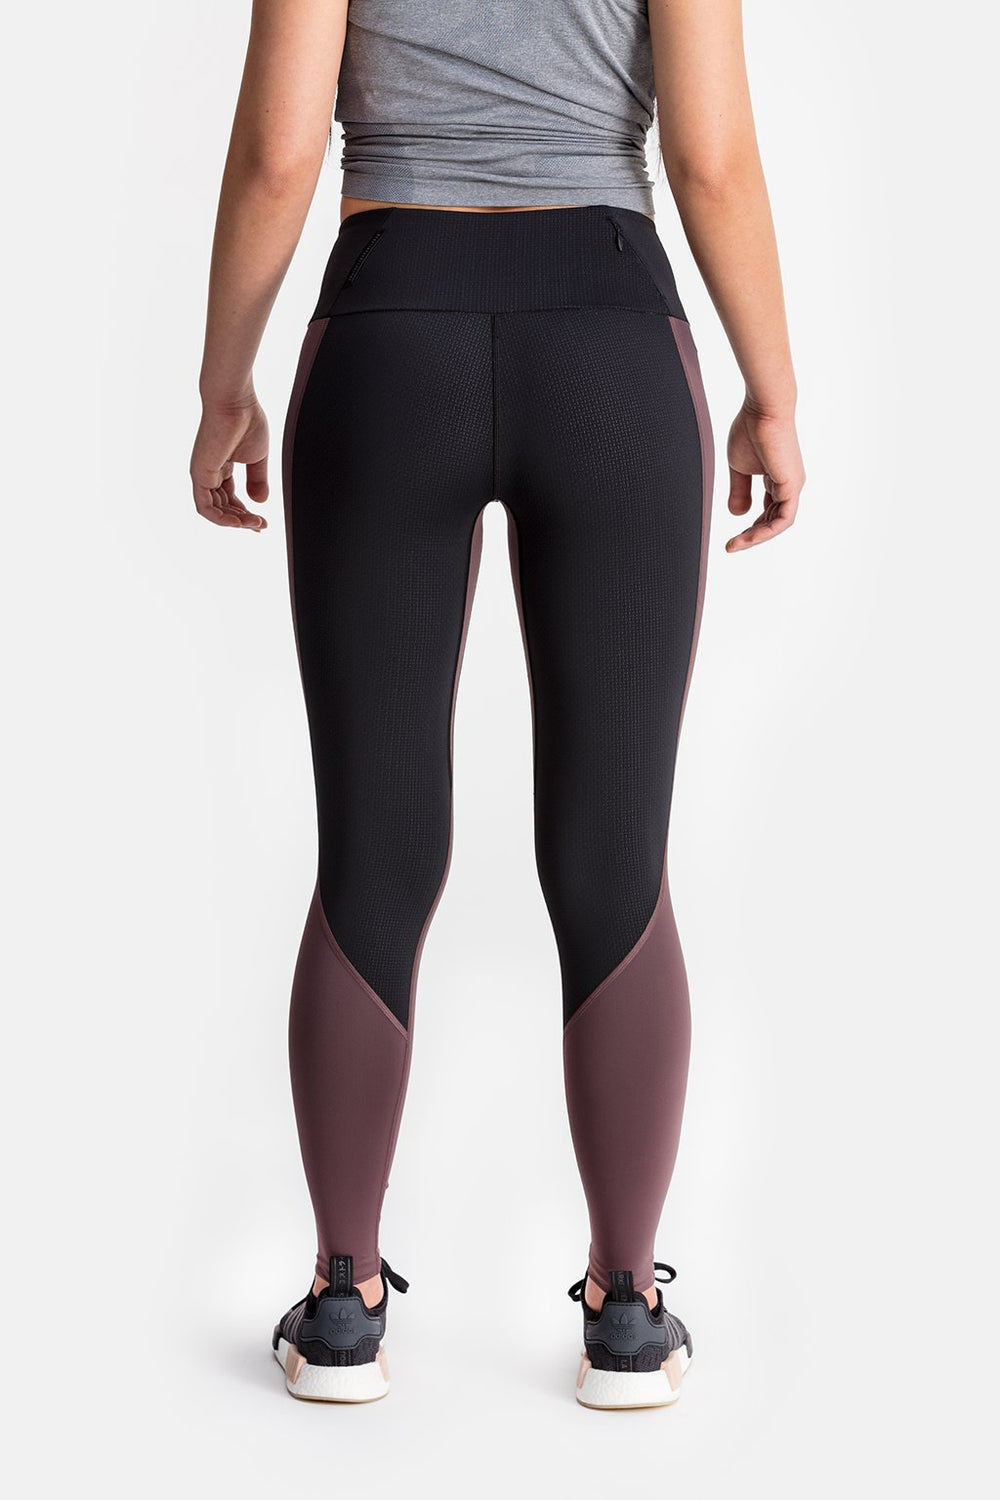 RYU Womens Cardio Tight in Raisin/Black